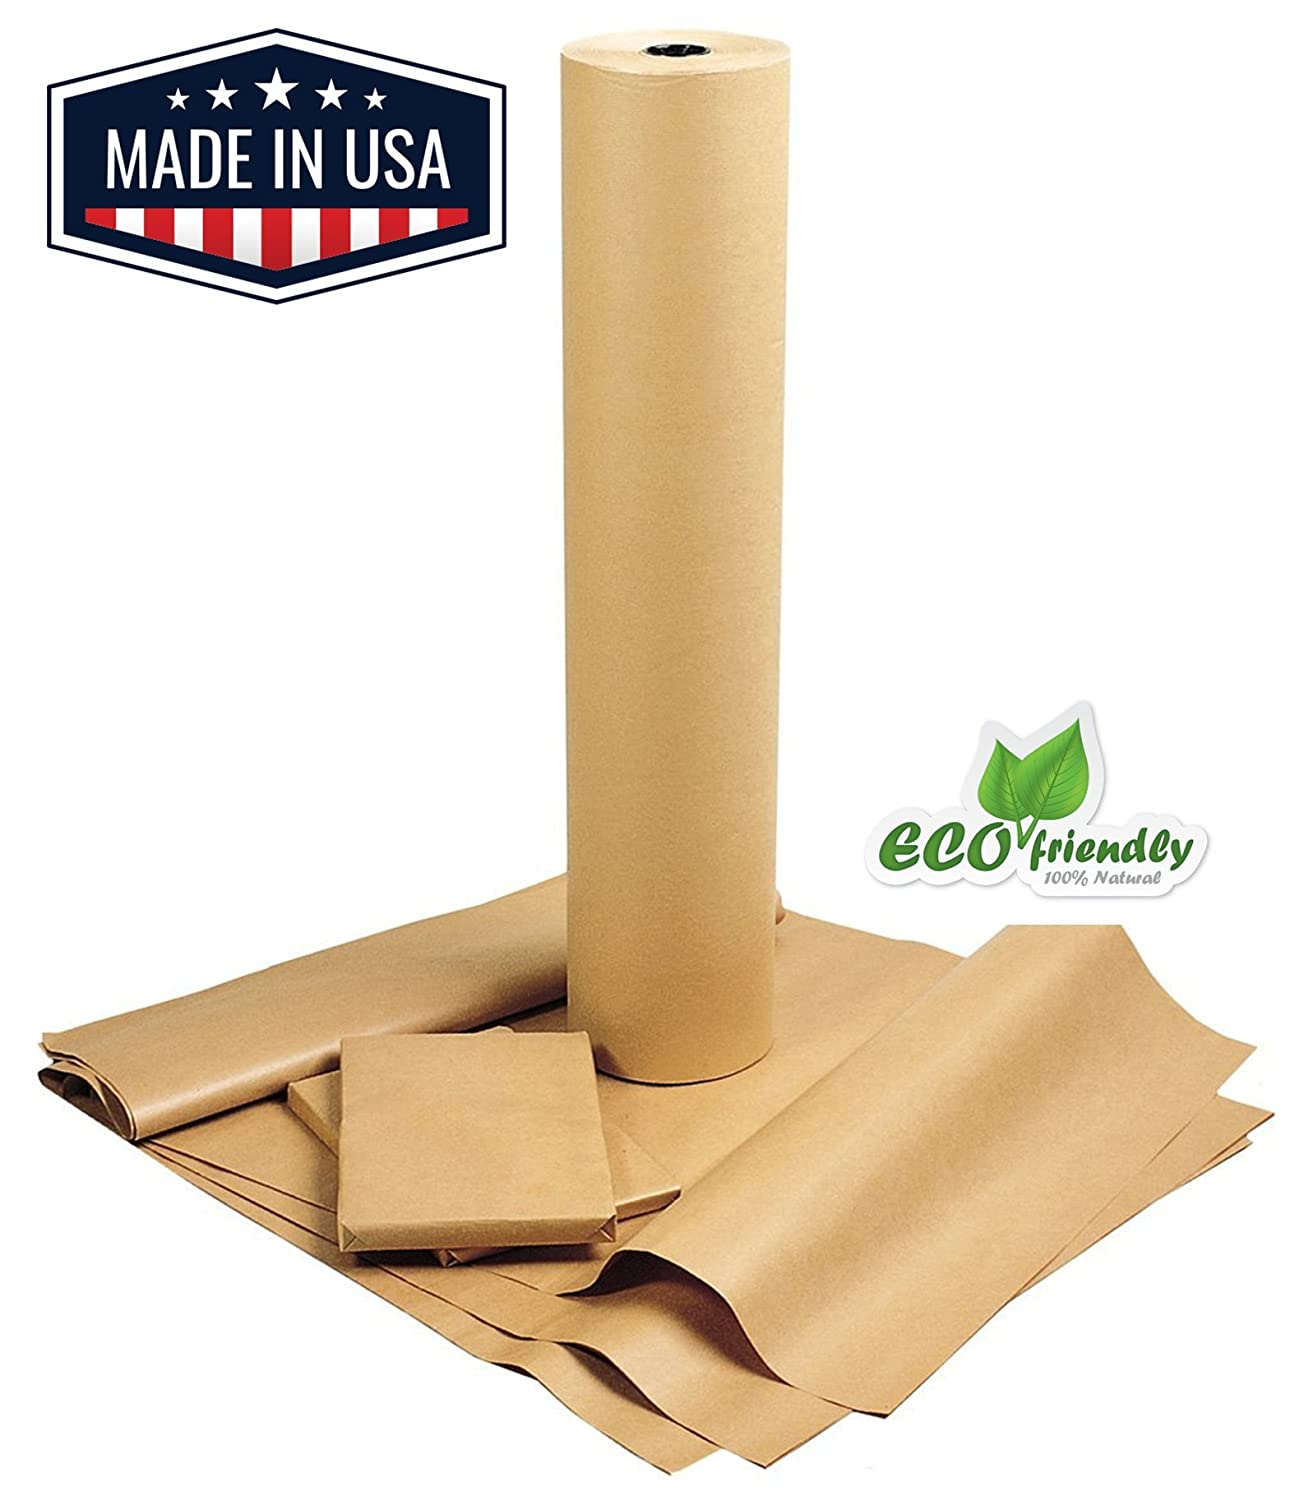 "American Made Brown Kraft Paper Jumbo Roll 17.75"" x 2400"" (200ft) Ideal for Gift Wrapping, Art, Craft, Postal, Packing, Shipping, Floor Covering, Dunnage, Parcel, Table Runner 100% Recycled Material NY Paper Mill 4336878802"